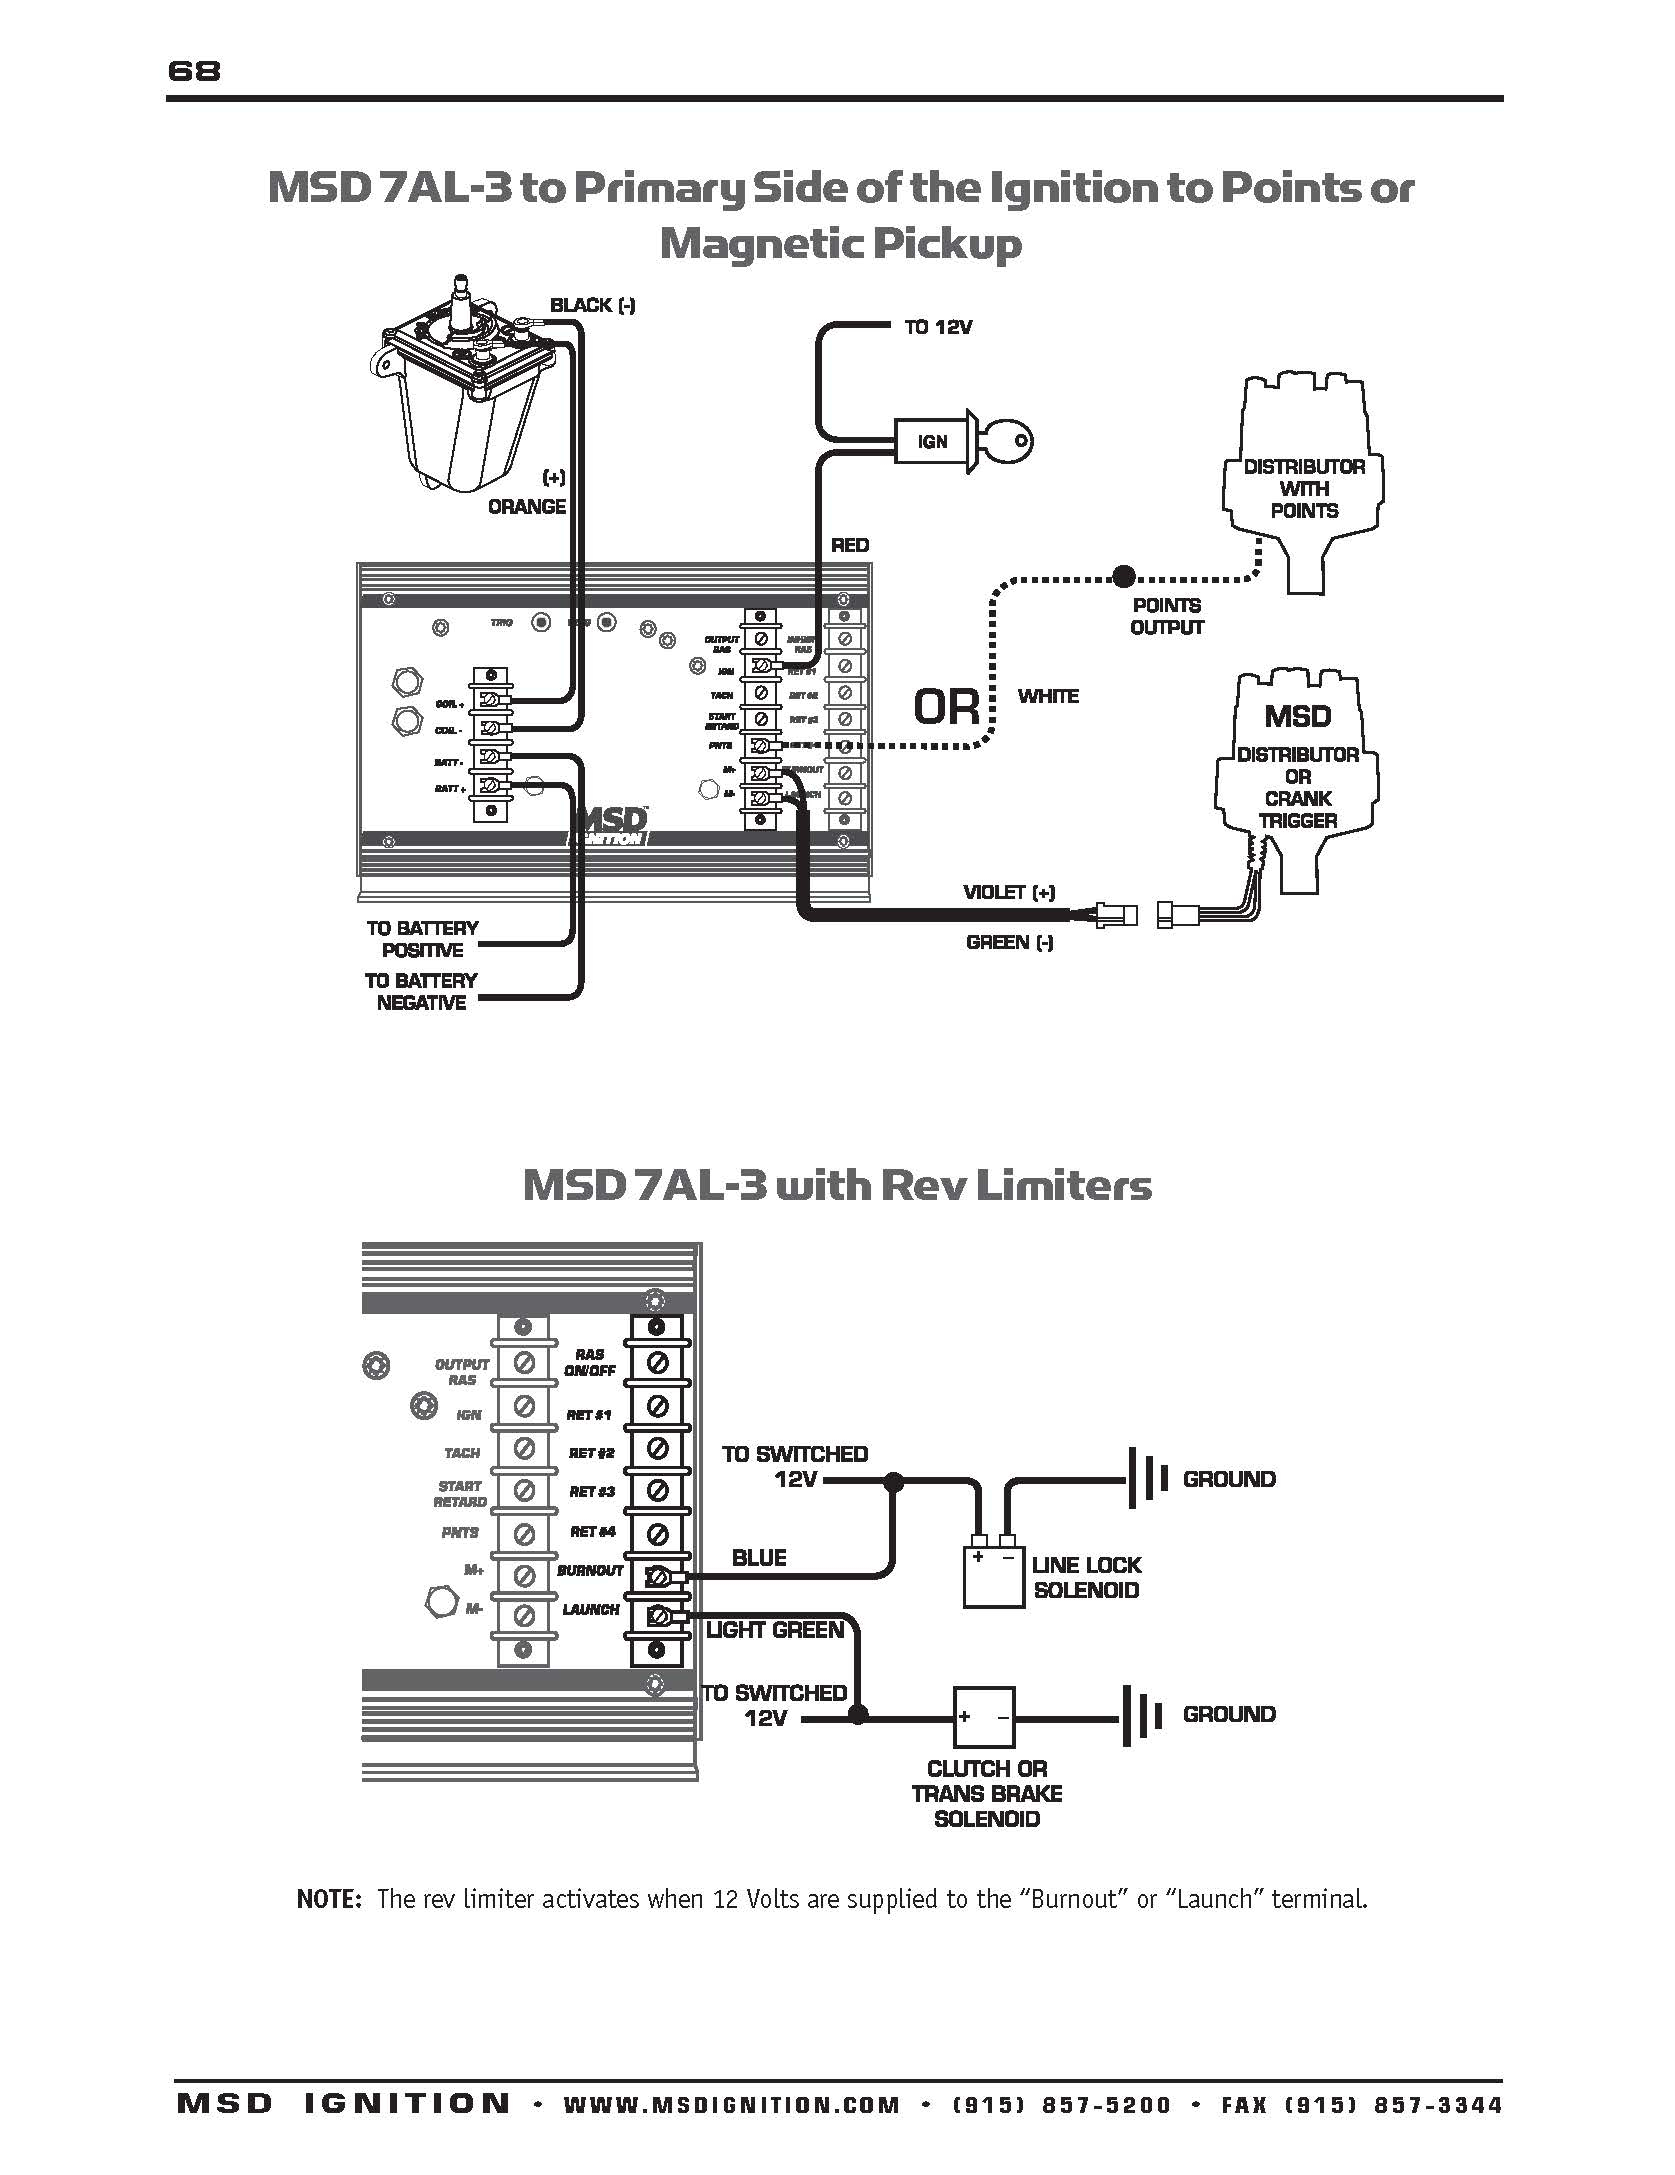 Msd 2 Step Wiring Diagram from 2020cadillac.com